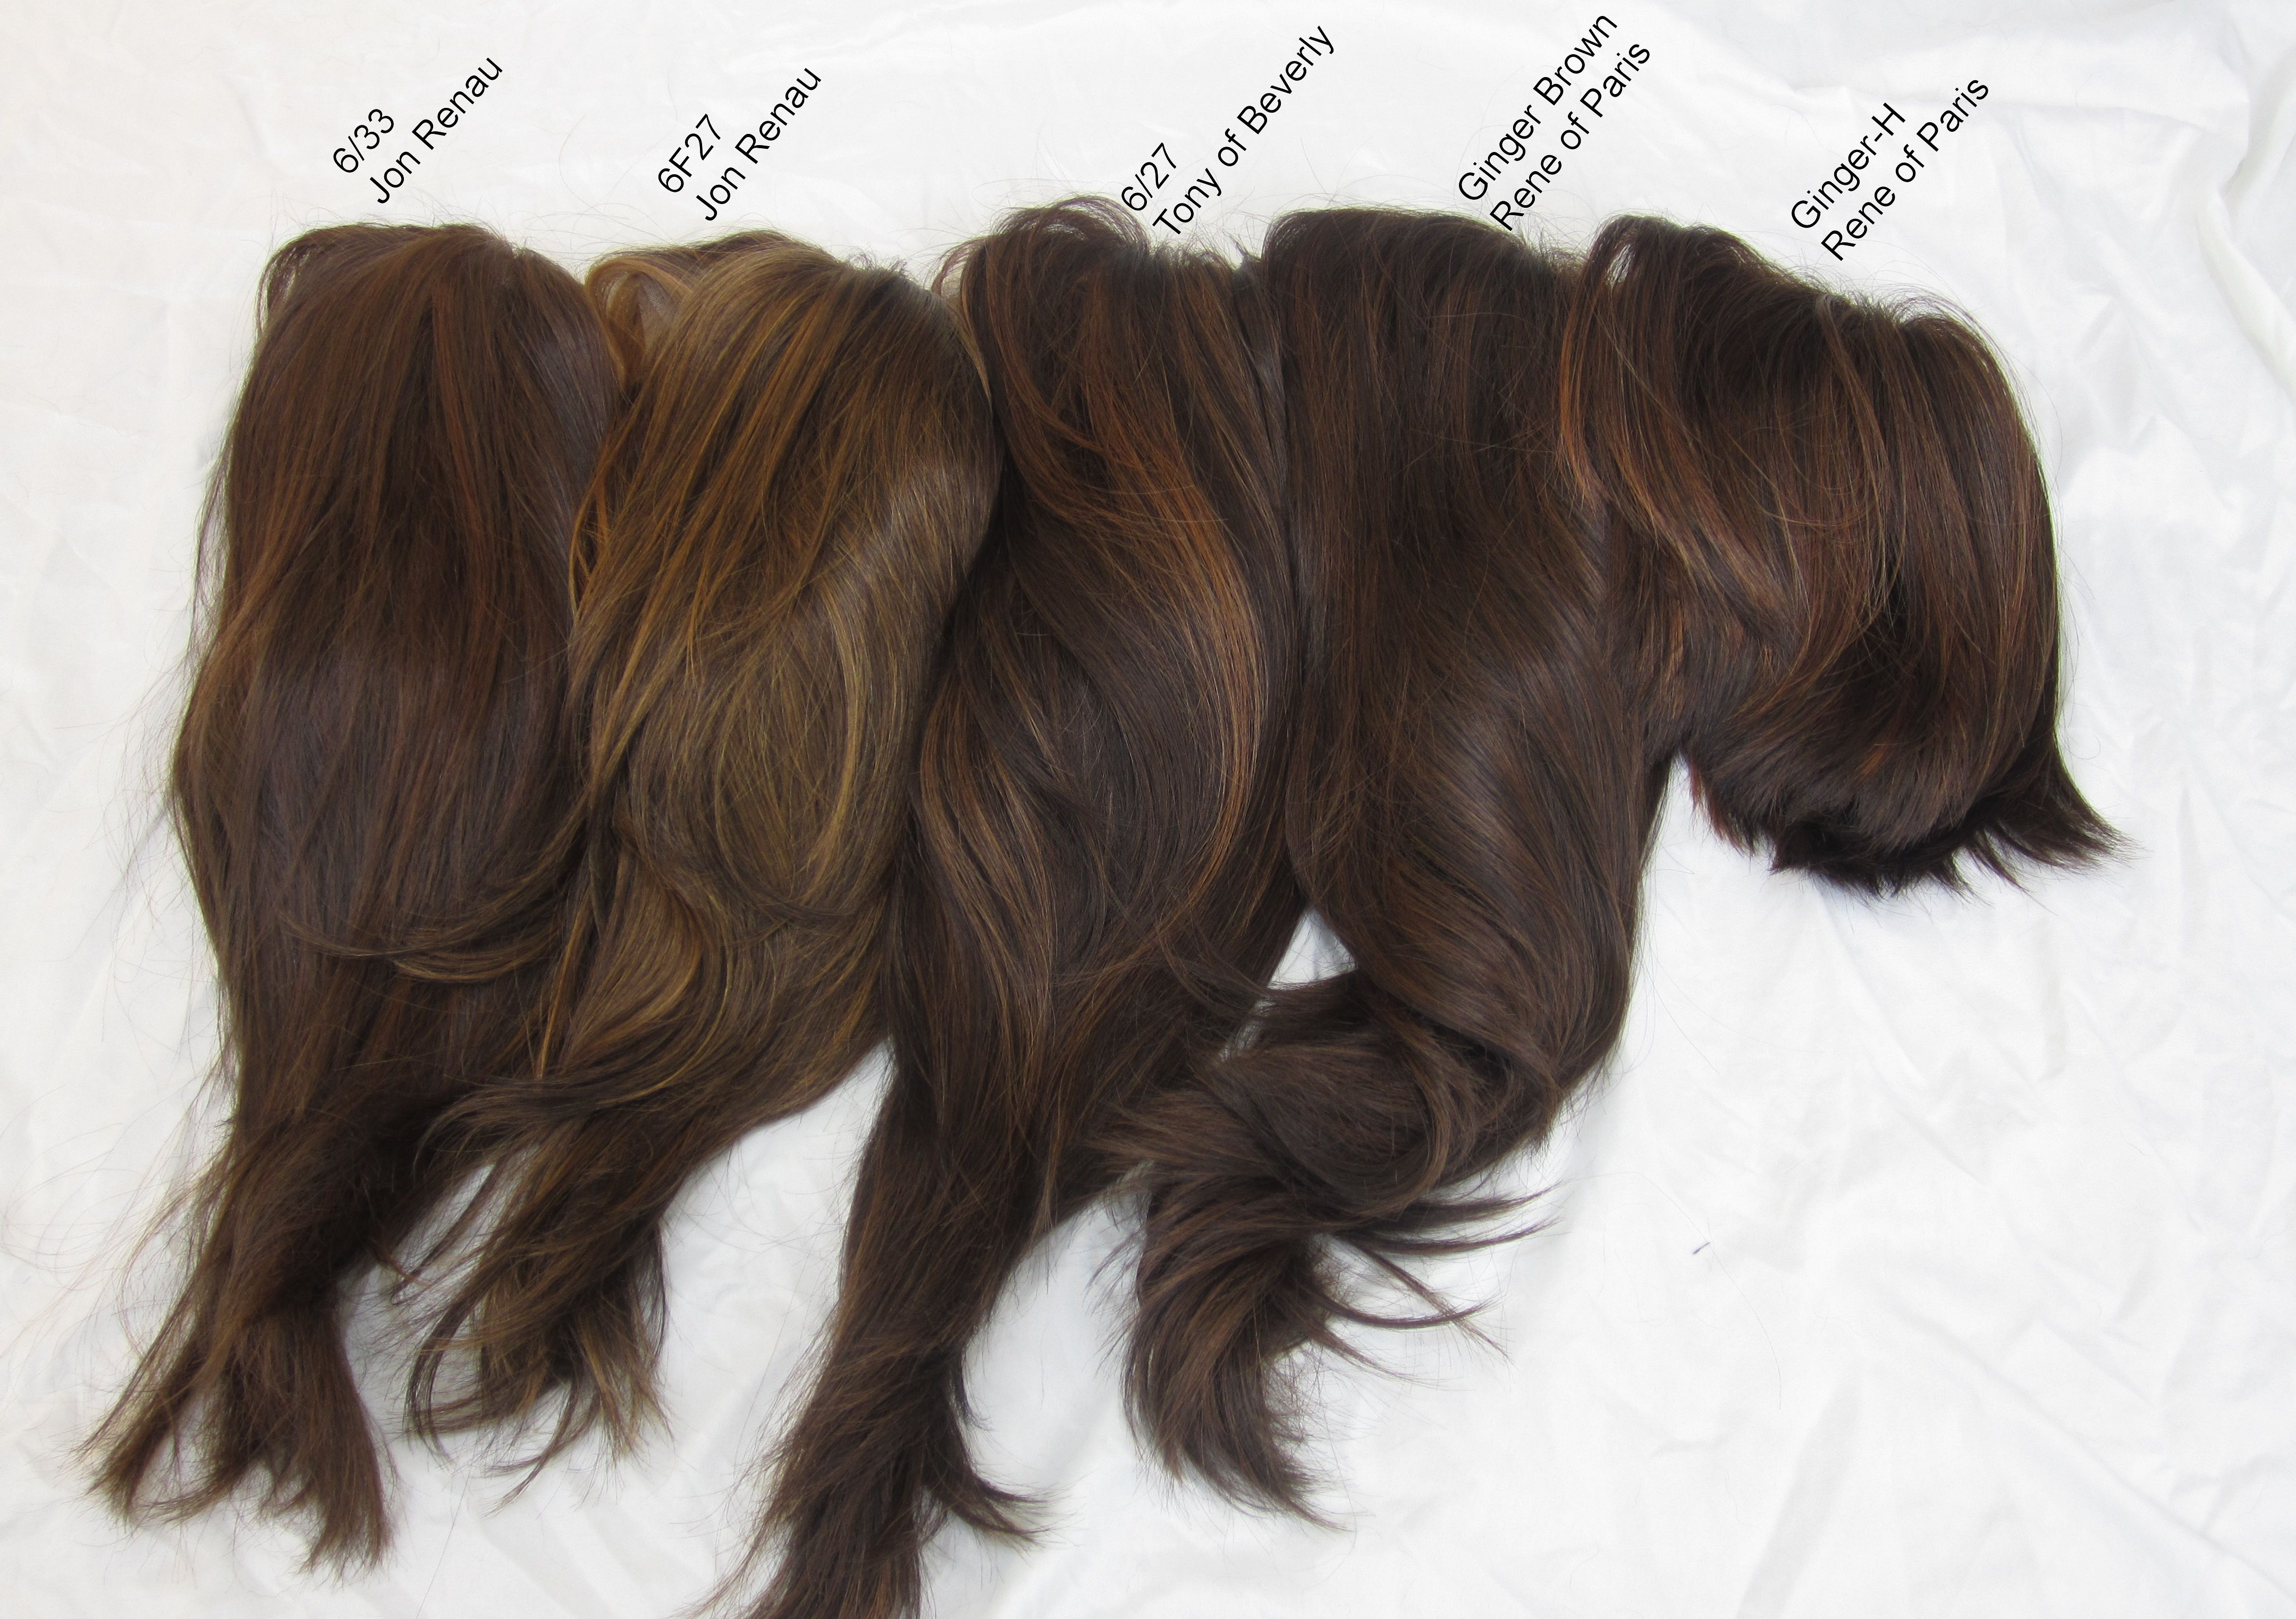 Wig Color Comparison Pictures Brunettes And Redheads